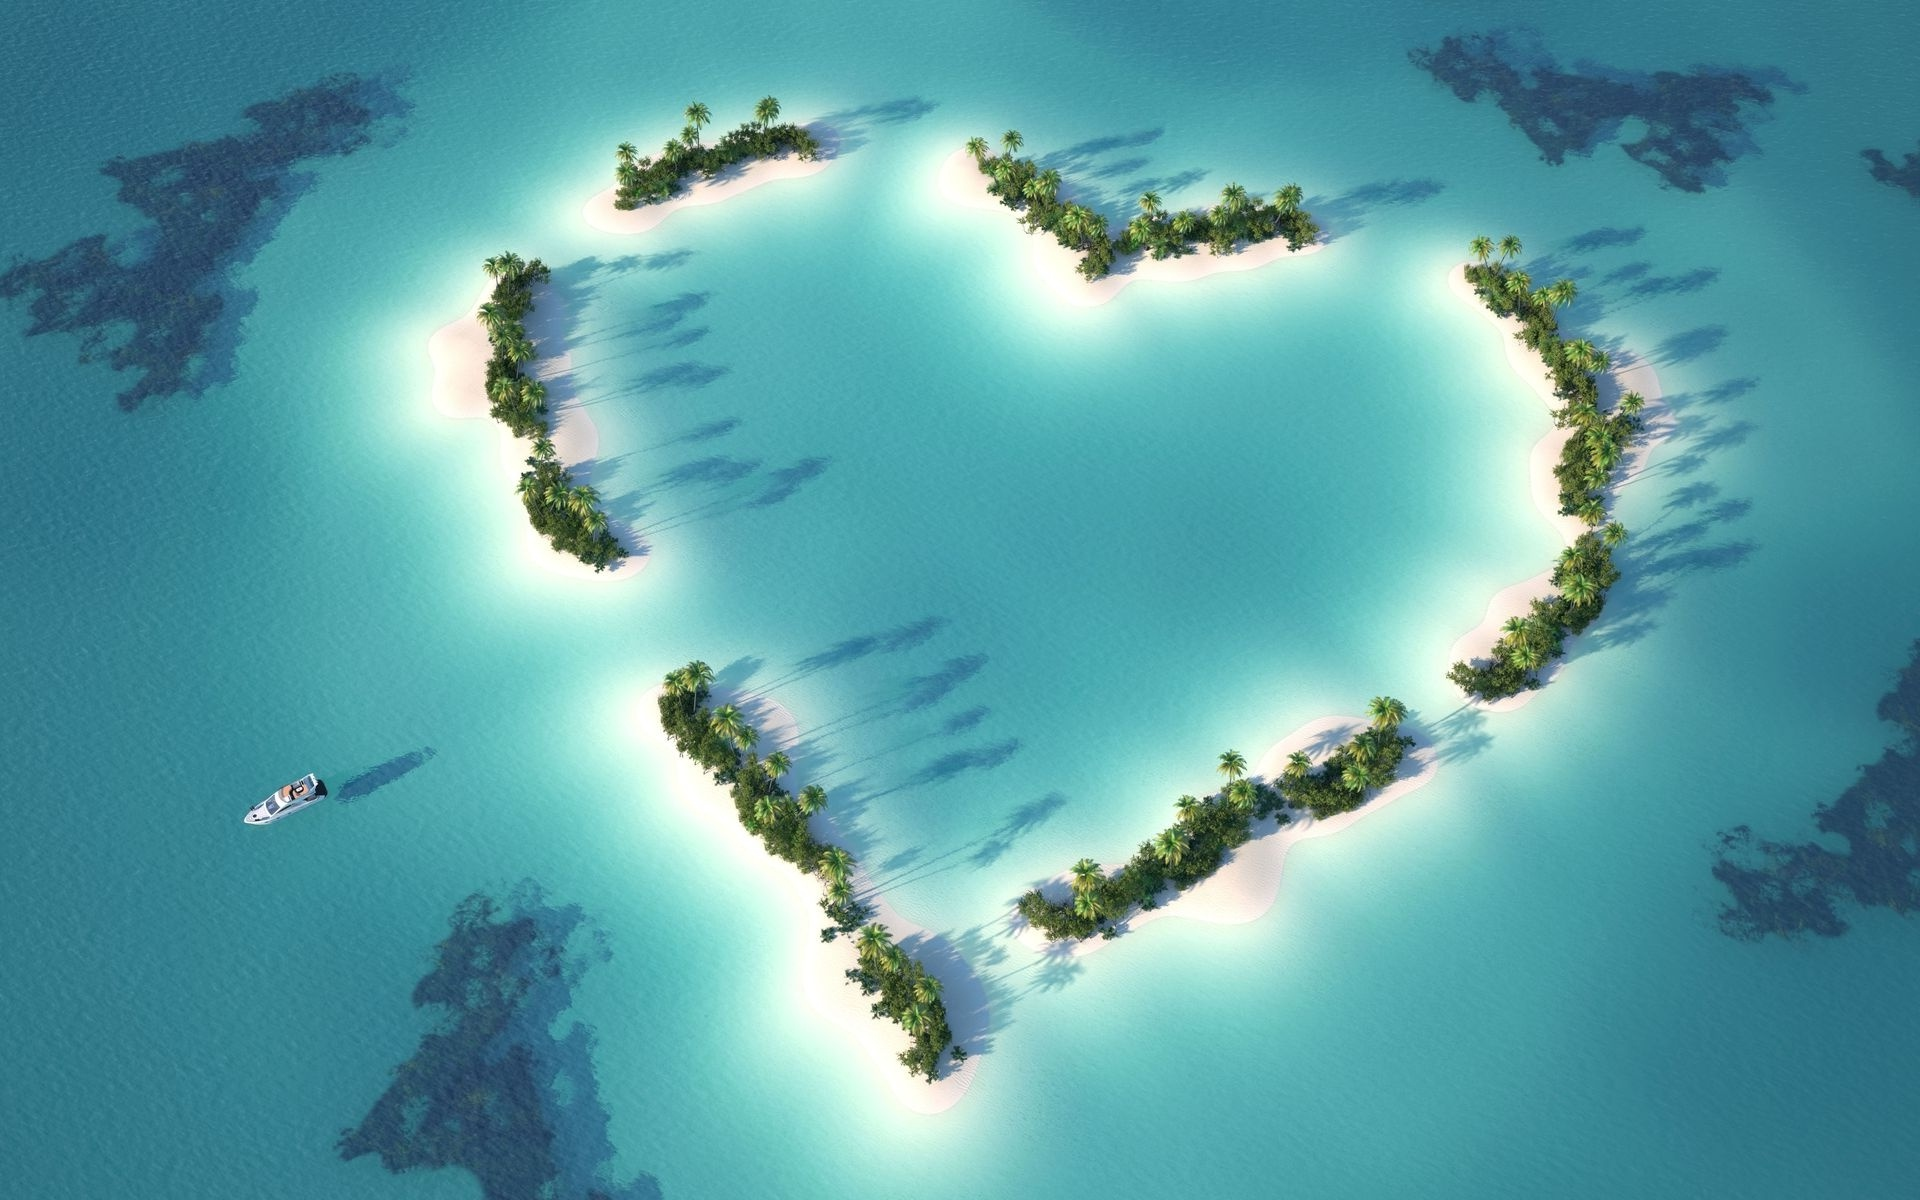 Islands in the Shape of Love Heart (click to view)